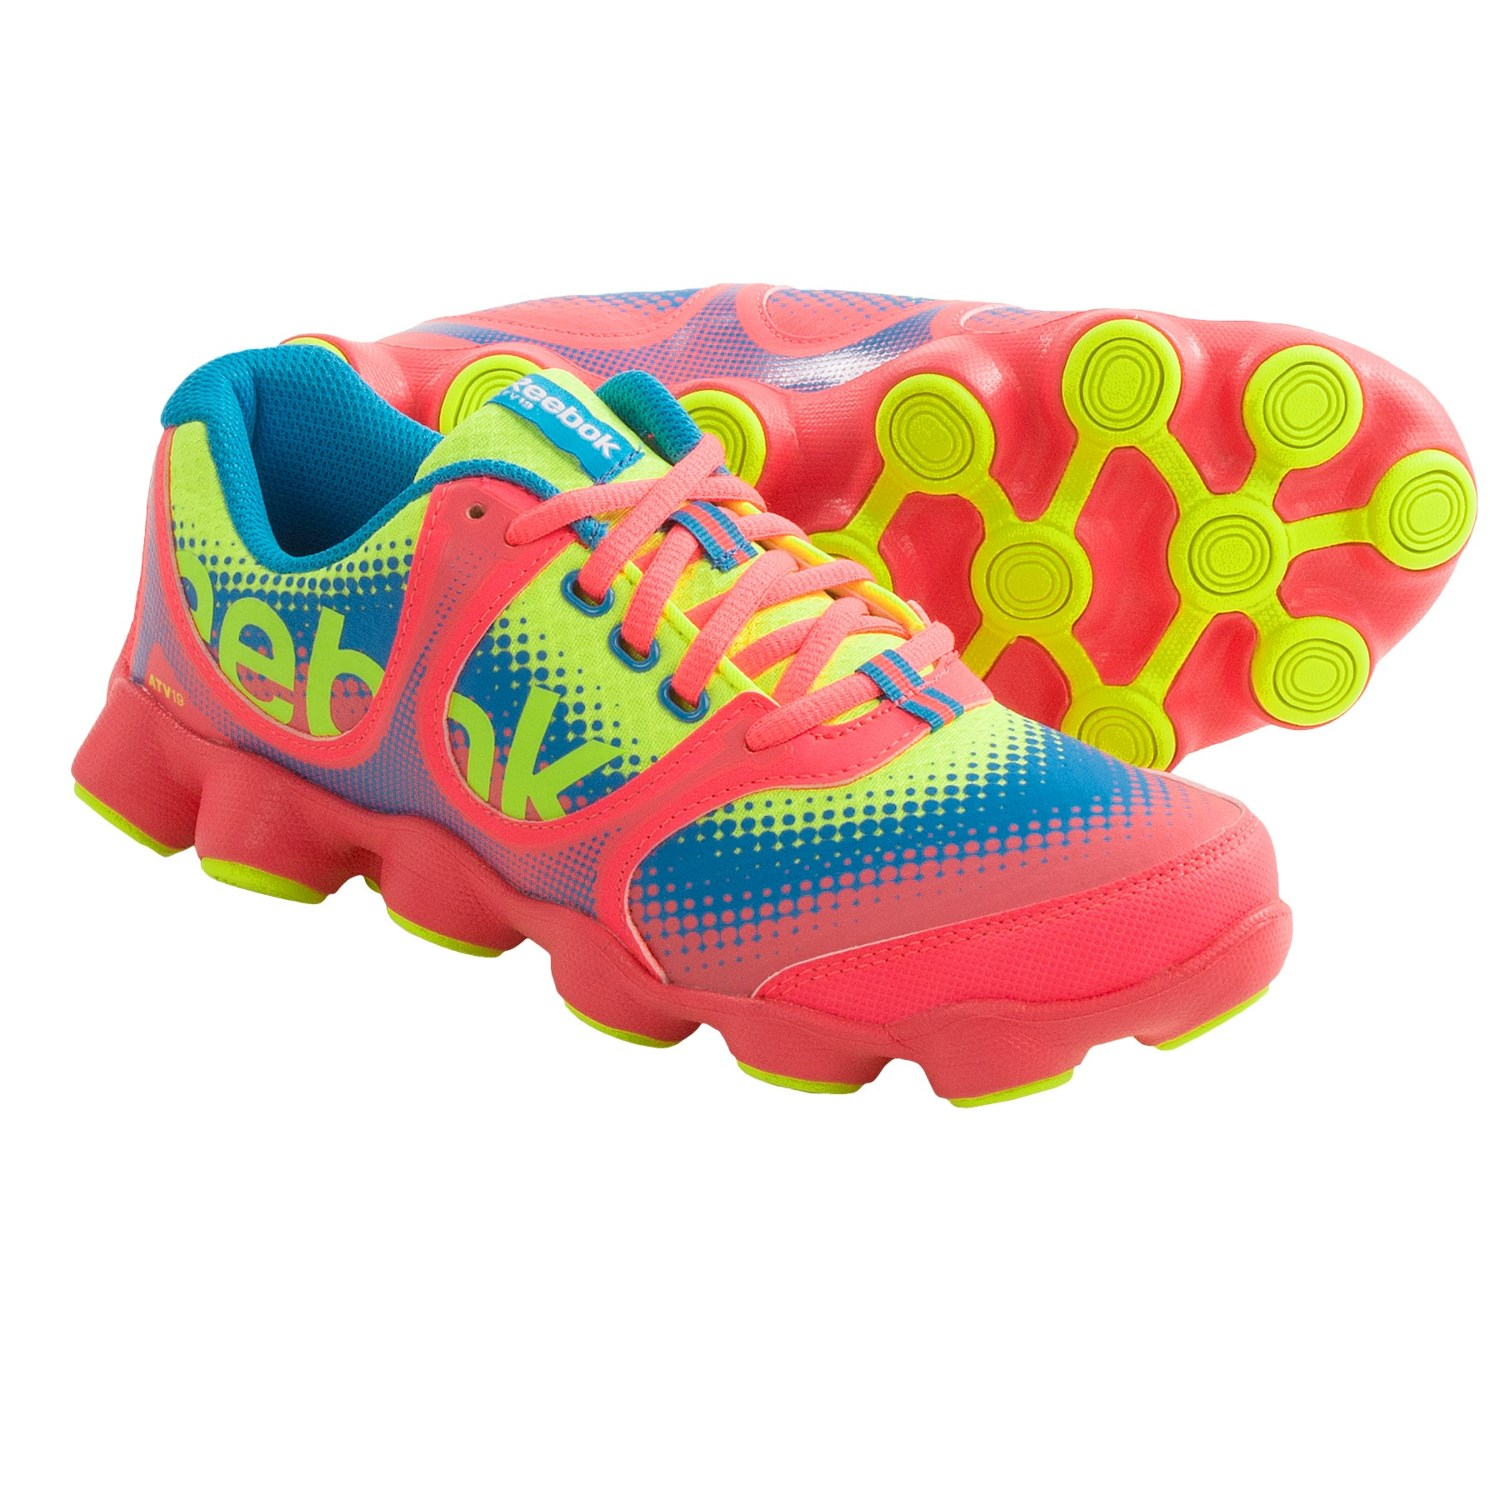 Reebok Running Shoes For Women 2013 Reebok running shoes for